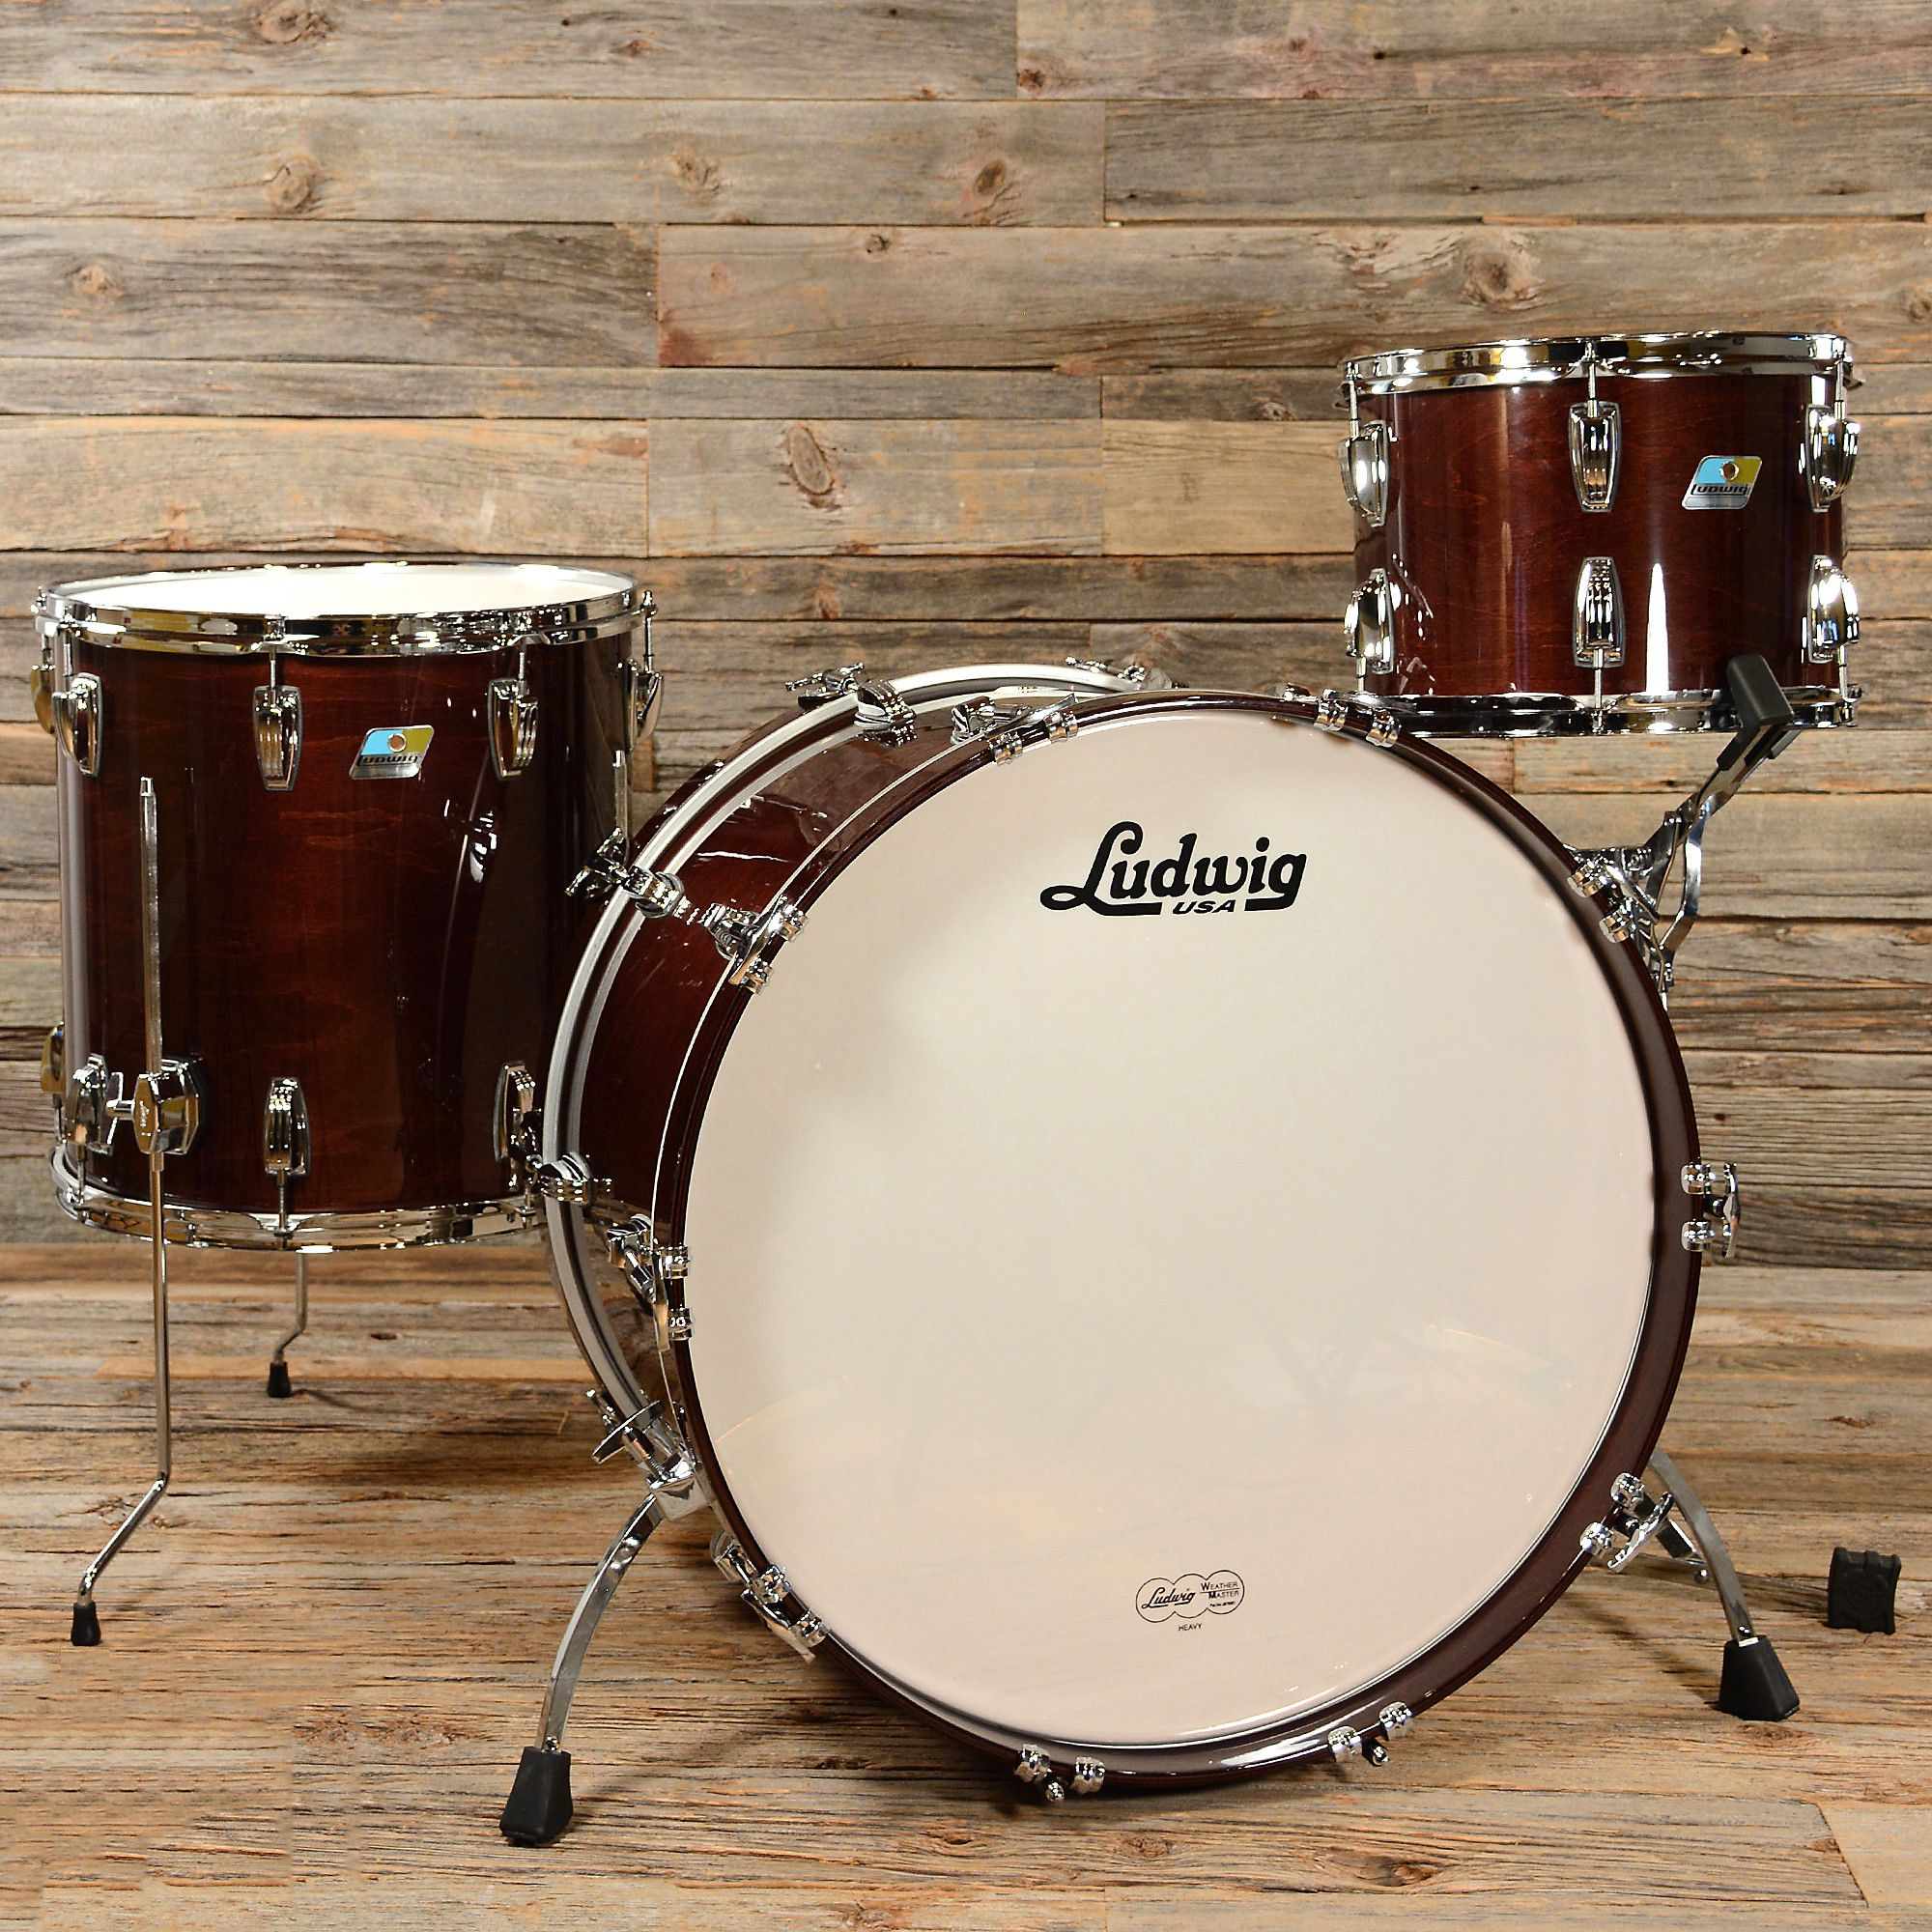 Ludwig Classic Maple 13 16 24 3pc Drum Kit Mahogany Stain Drum Kits Drums Ludwig Drums